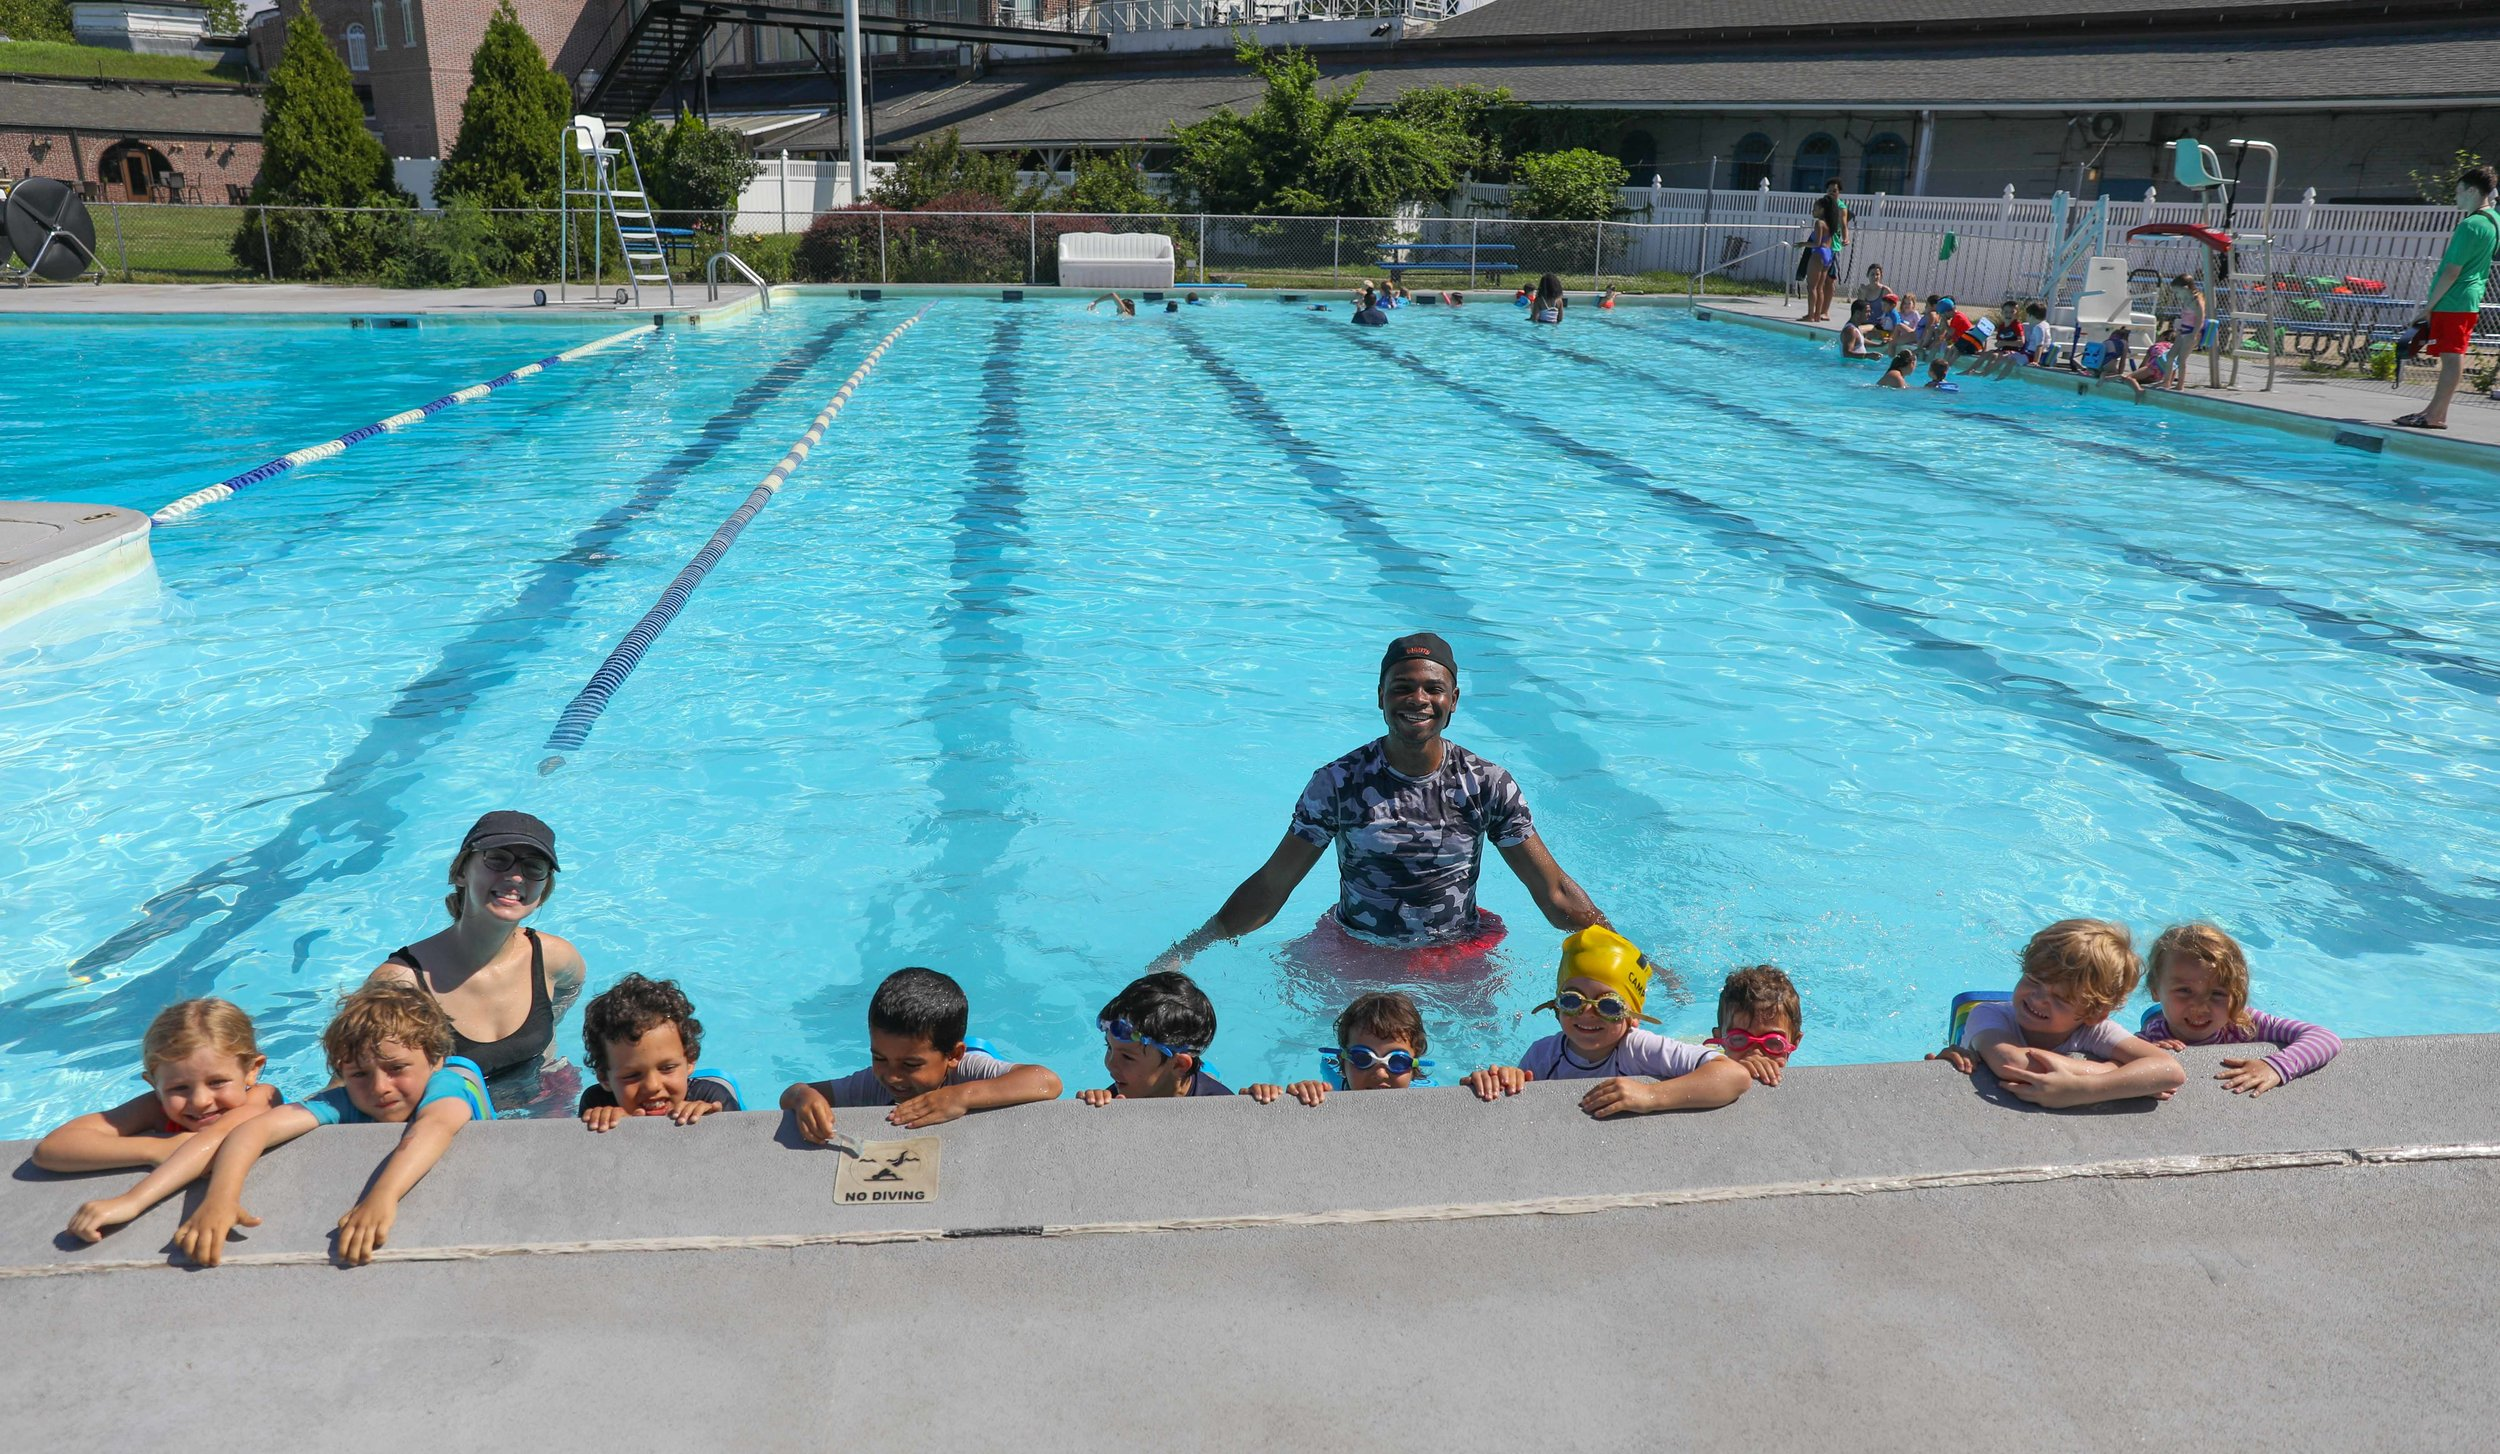 - We offer swim instruction twice a week right here in Brooklyn. Led by our own aquatics director, Lauren, and a dedicated team of Beansprouts' lifeguards, we spend the summer teaching the fundamentals of swimming - and allowing children to gain experience and comfortability in the water.